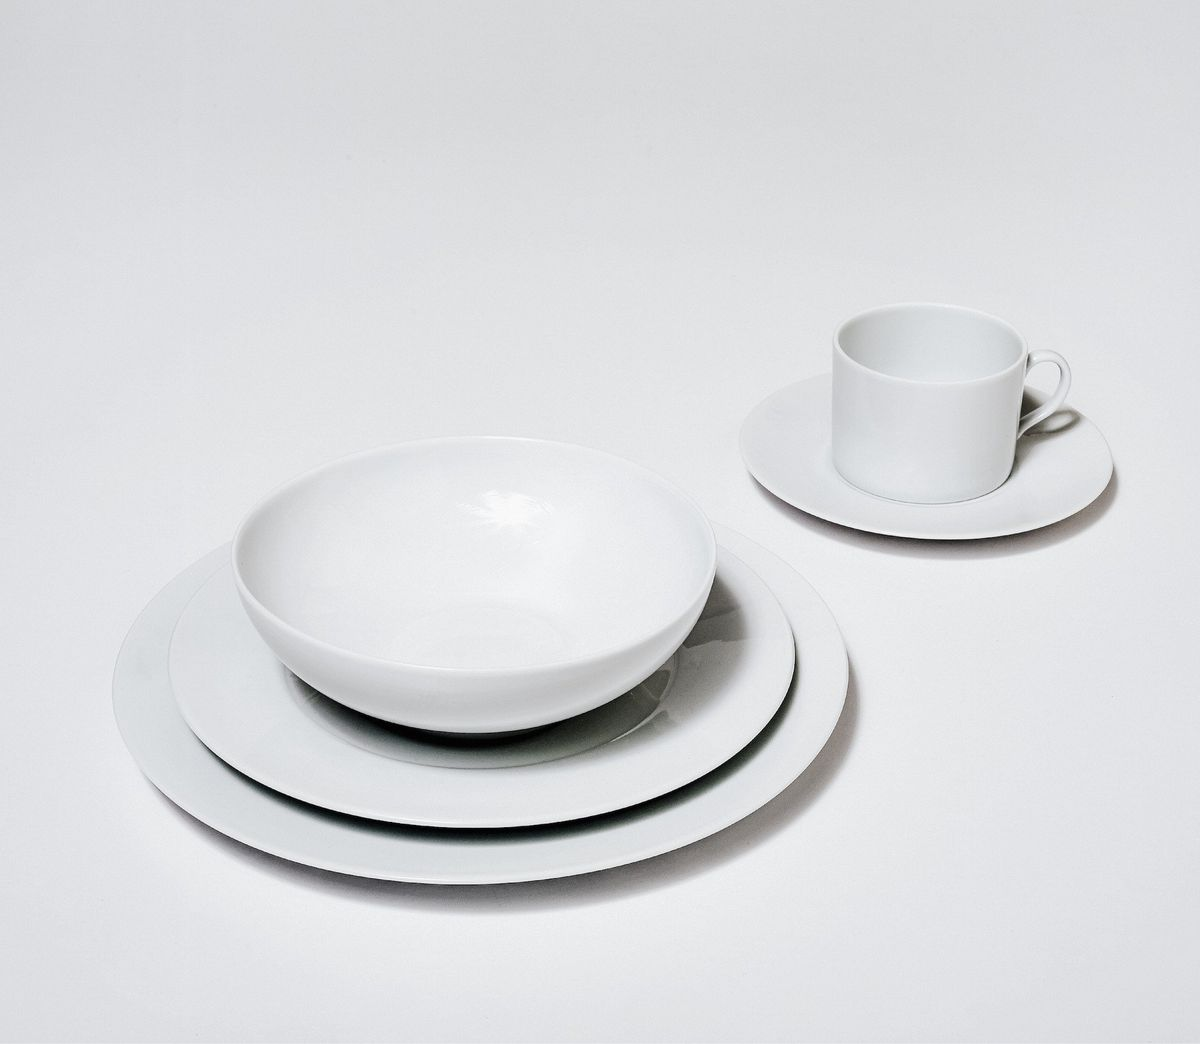 Two plates stacked under a bowl and a cup and saucer, all white, on a white background